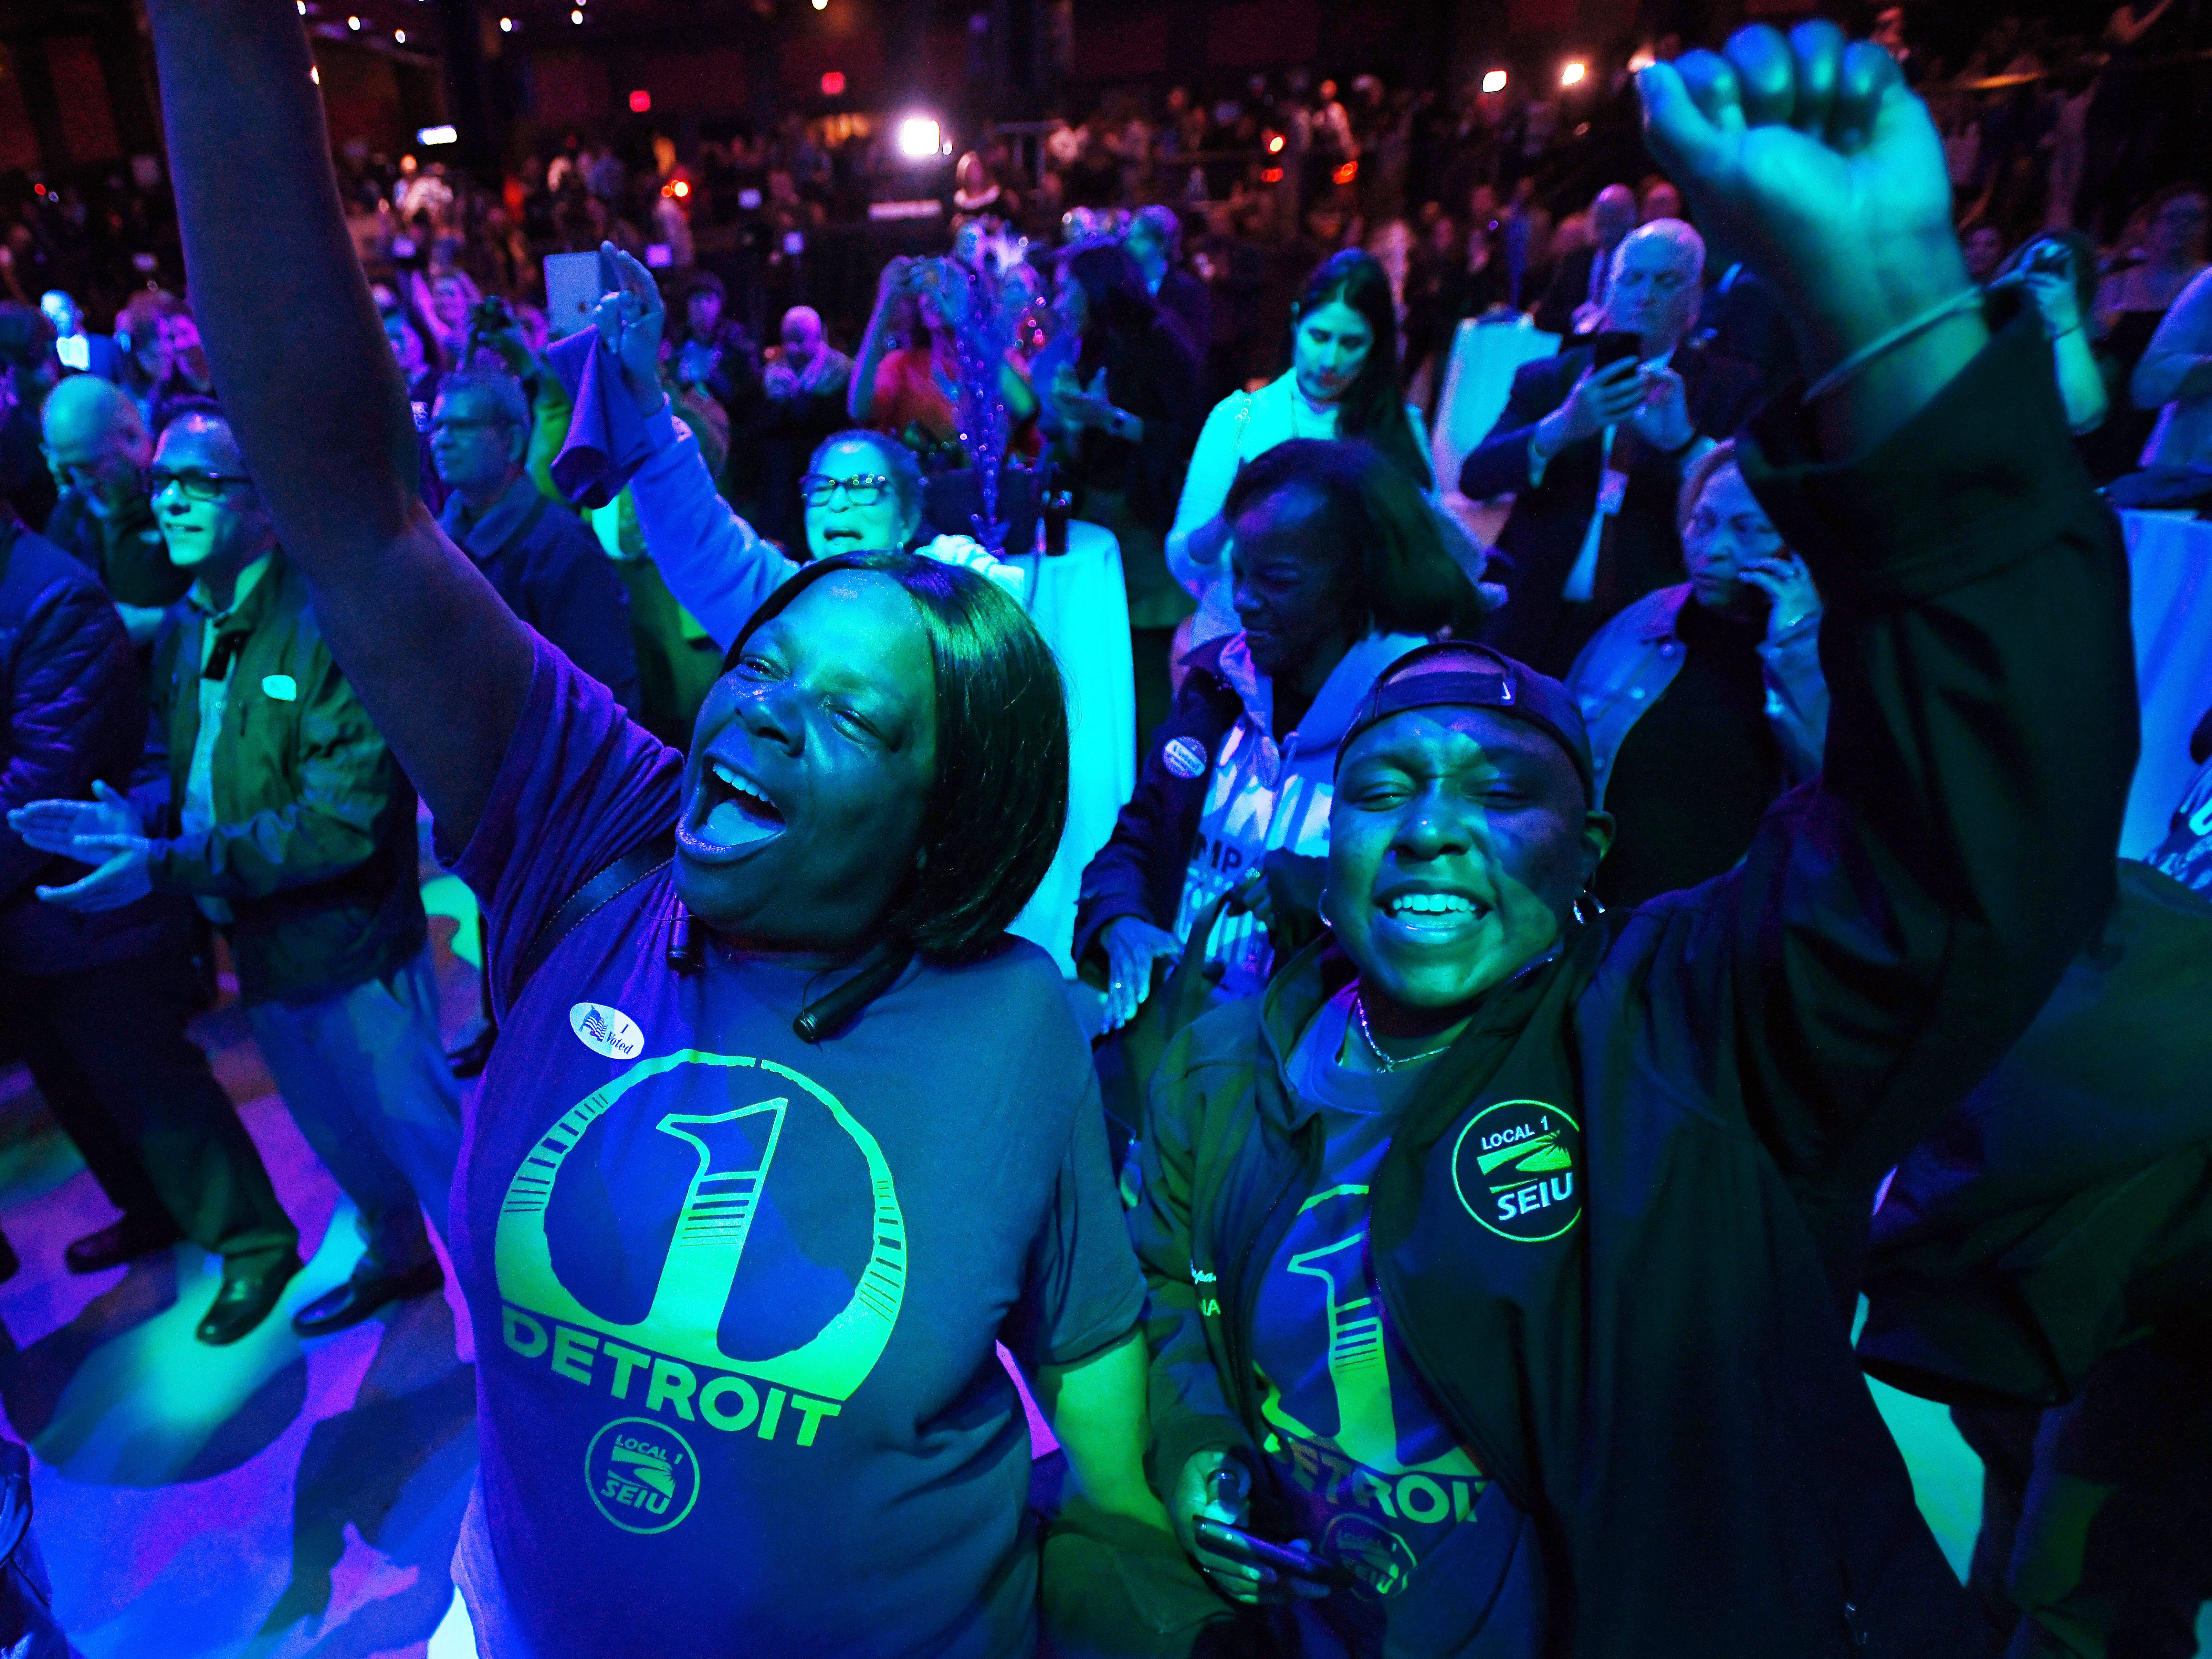 Kim Williams and Paulette Compass, both with SEIU, cheer as Detroit Mayor Mike Duggan tells the Democratic crowd at MotorCity Casino's Sound Board that  Michigan gubernatorial candidate Gretchen Whitmer is in the lead in the early results.